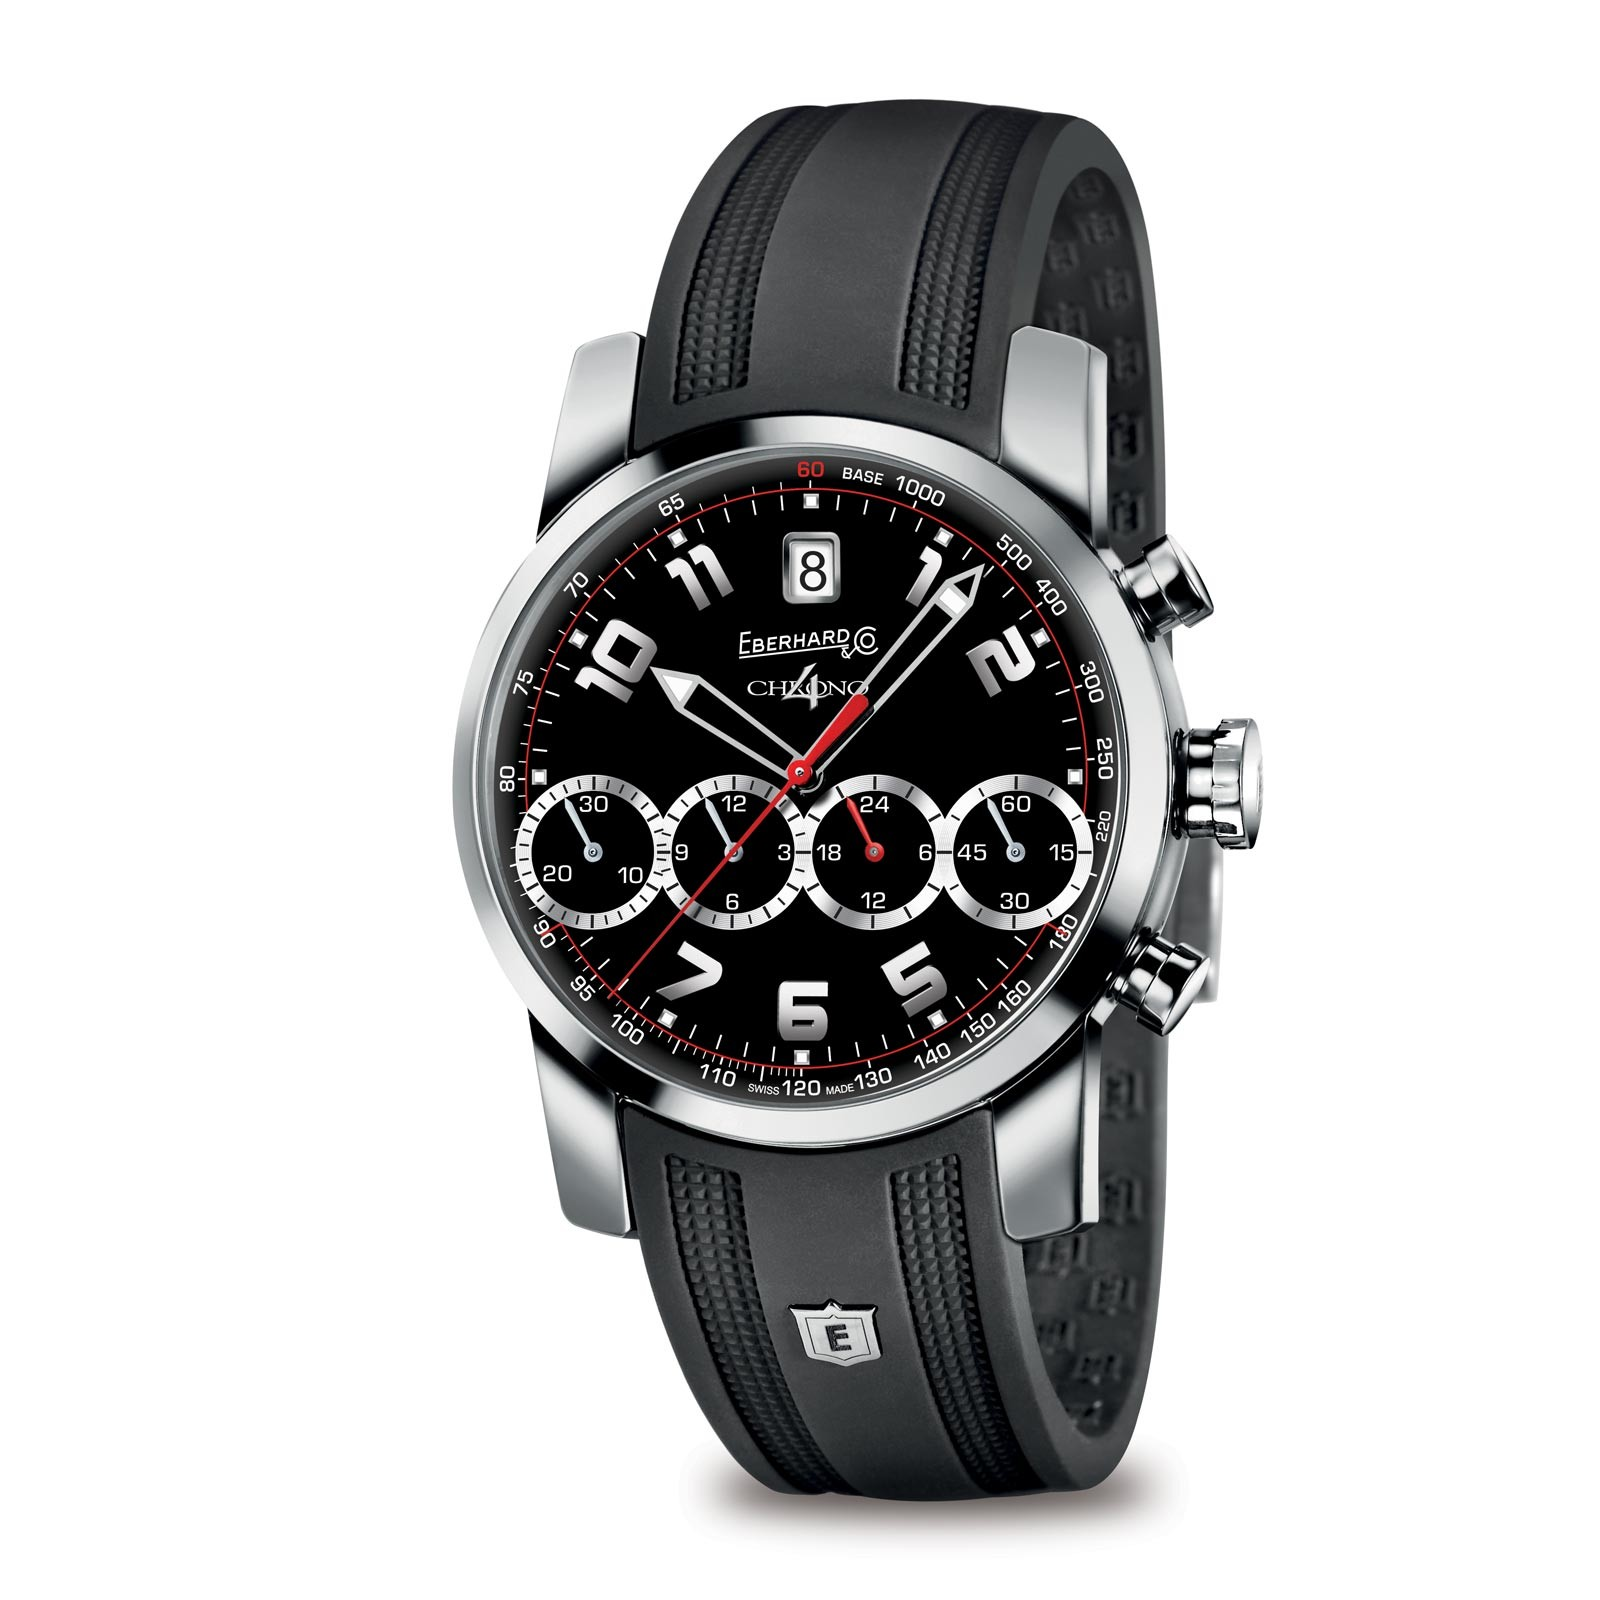 Naziv: eberhard-and-co-chrono-4-31041-watch-face-view.jpg, pregleda: 526, veličina: 227,9 KB